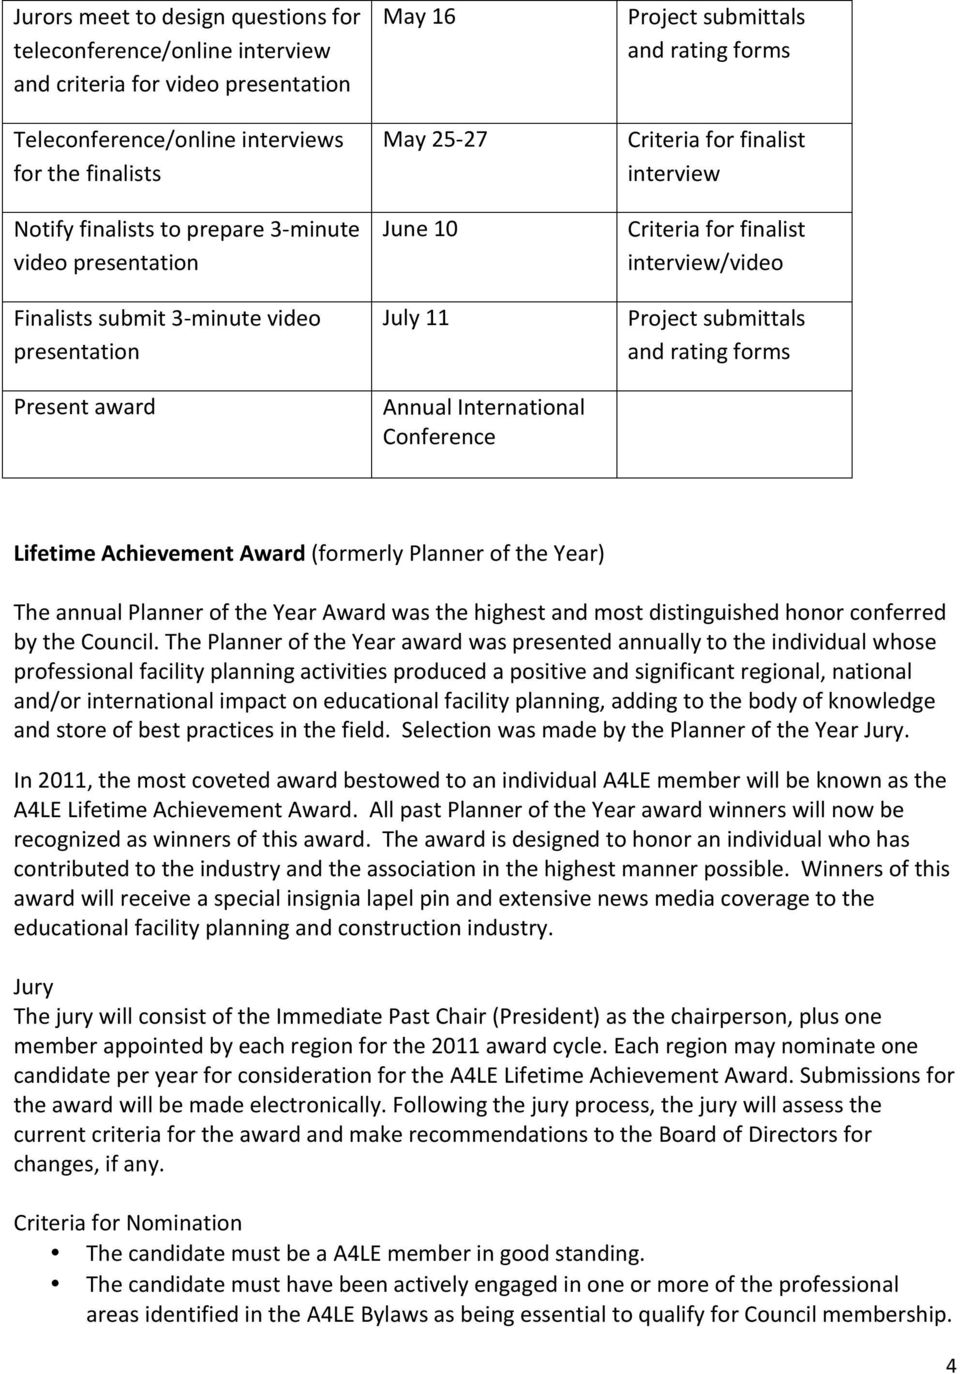 interview Criteria for finalist interview/video Project submittals and rating forms Lifetime Achievement Award (formerly Planner of the Year) The annual Planner of the Year Award was the highest and